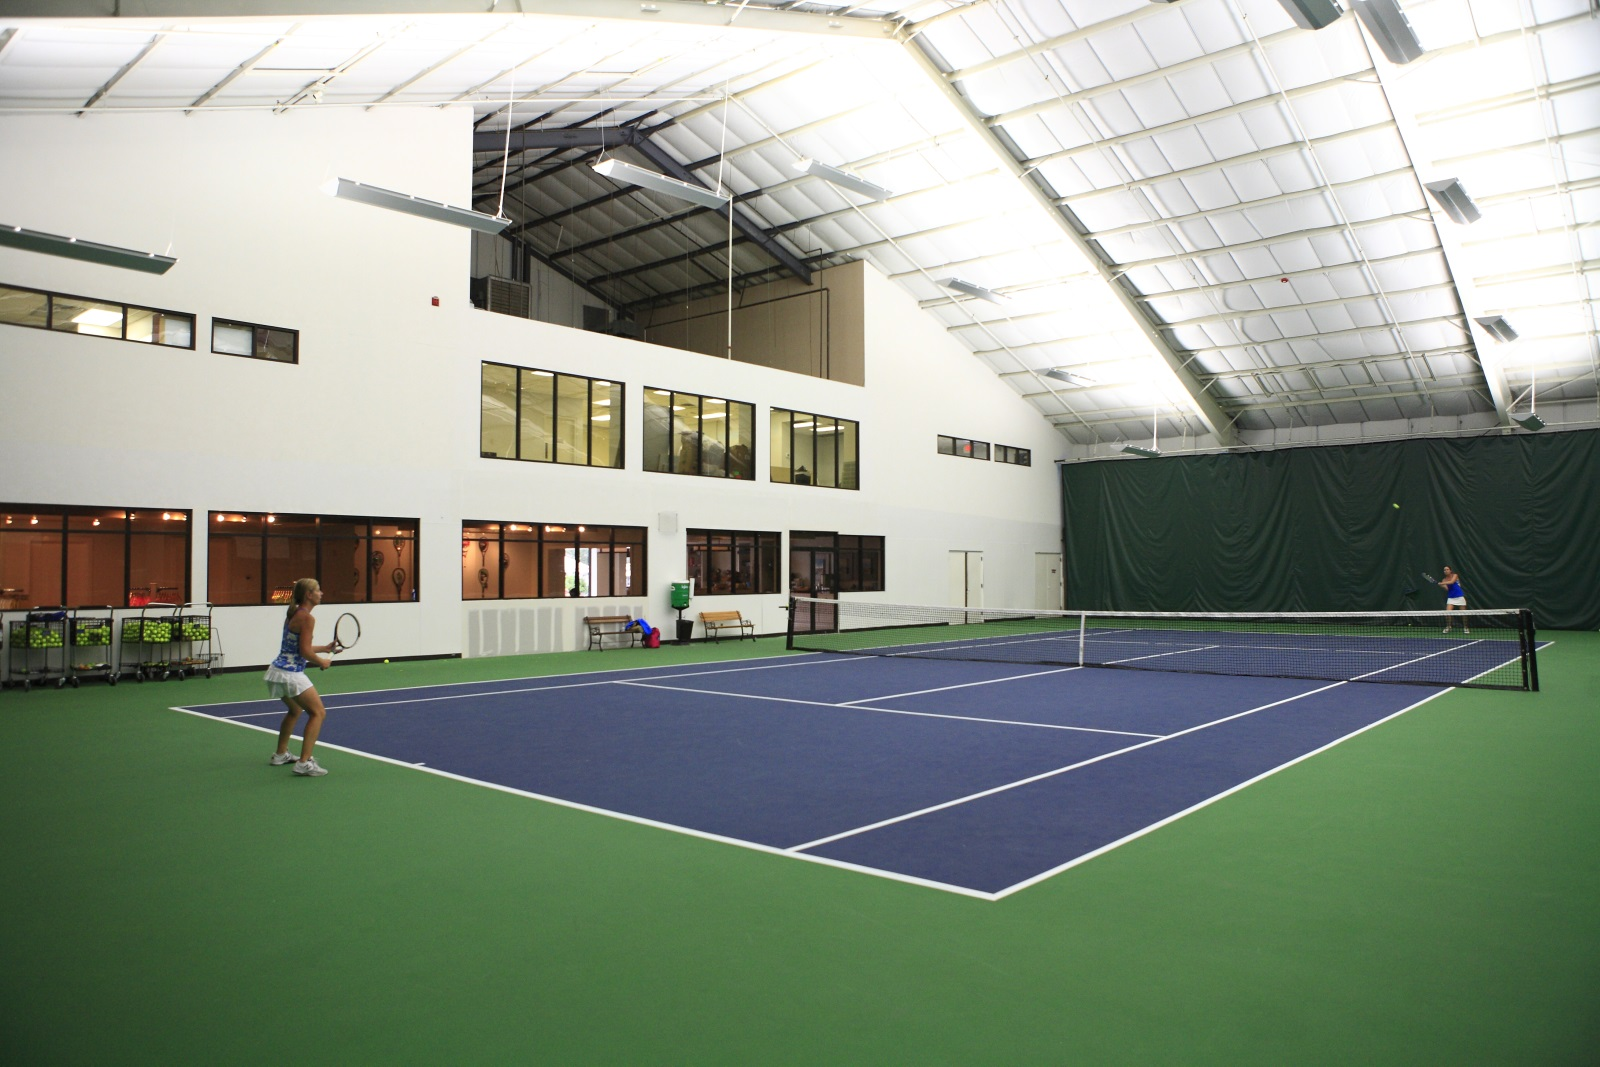 Emejing Indoor Tennis Courts Dallas Images - Decoration Design Ideas ...